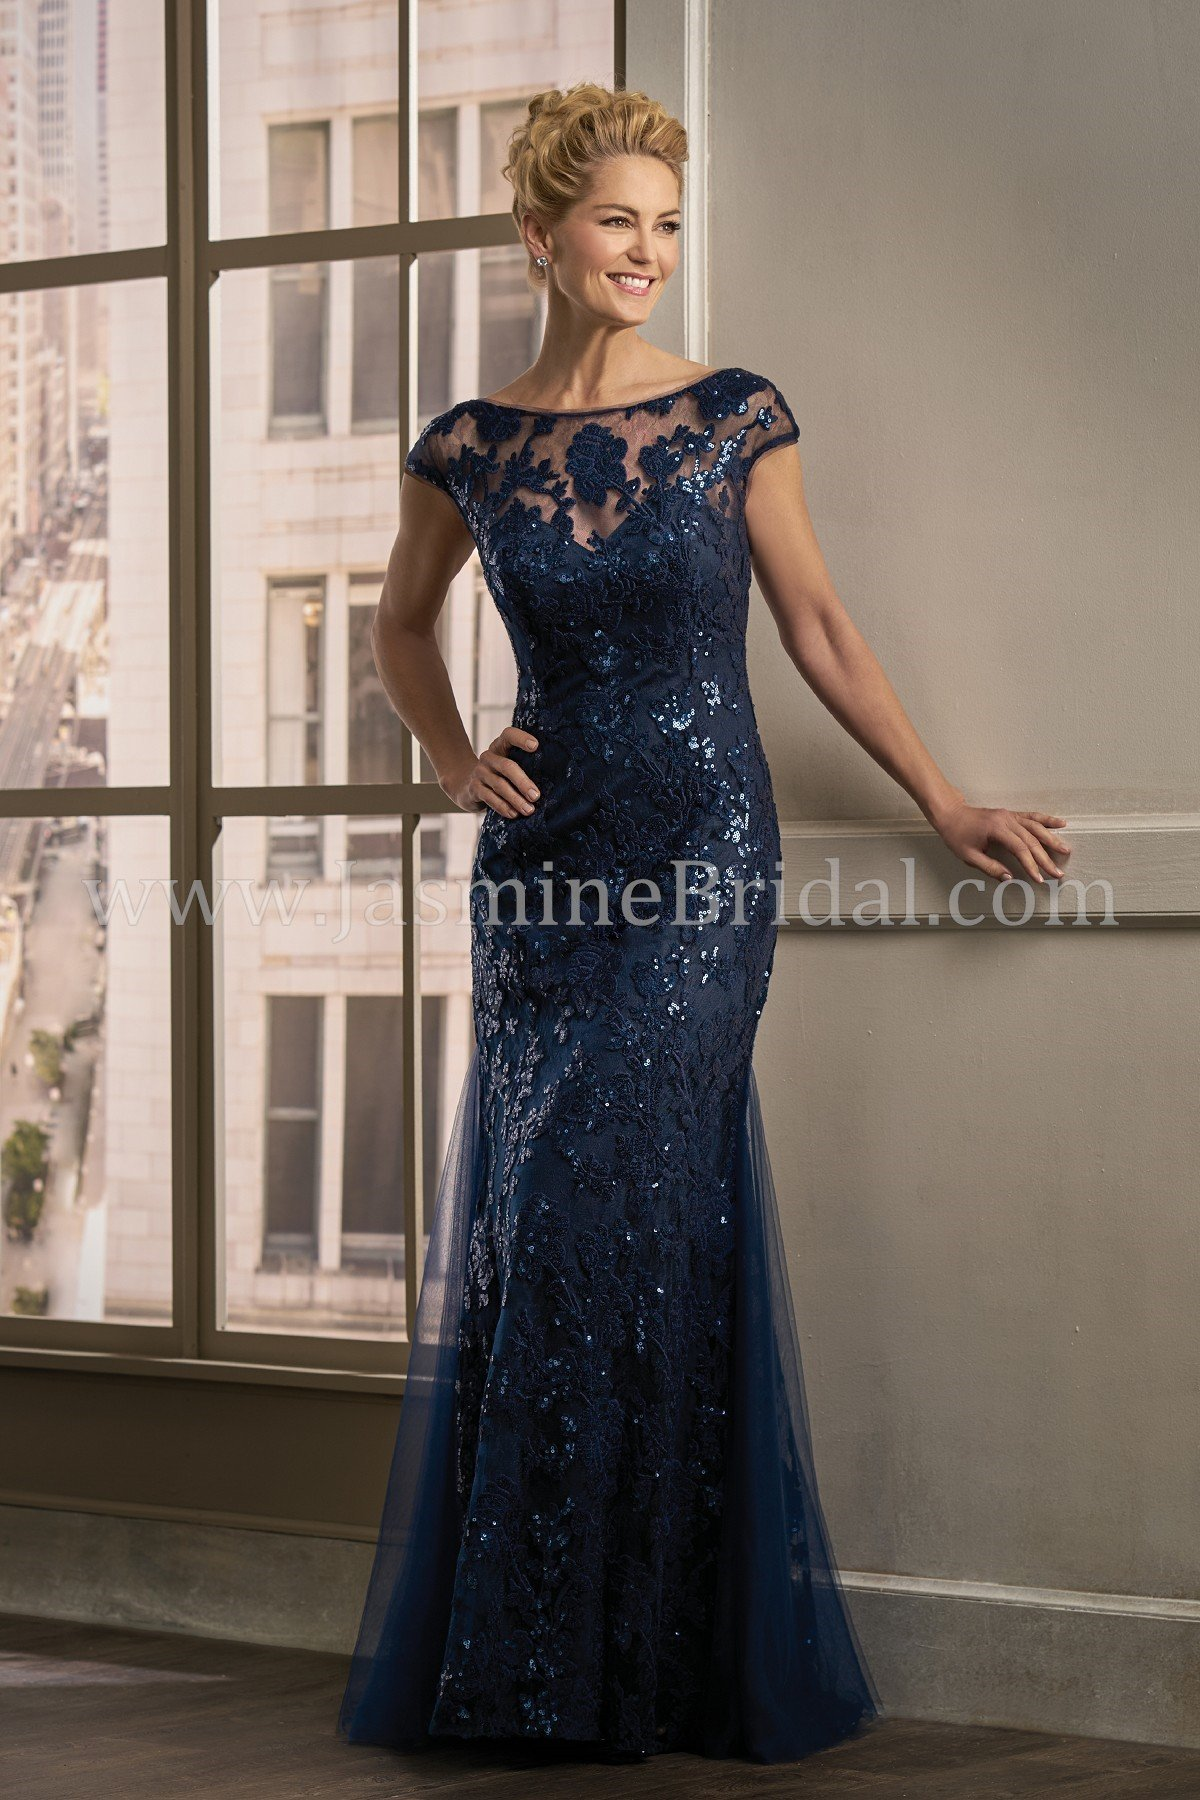 mother-of-the-bride-dresses-K198011-F